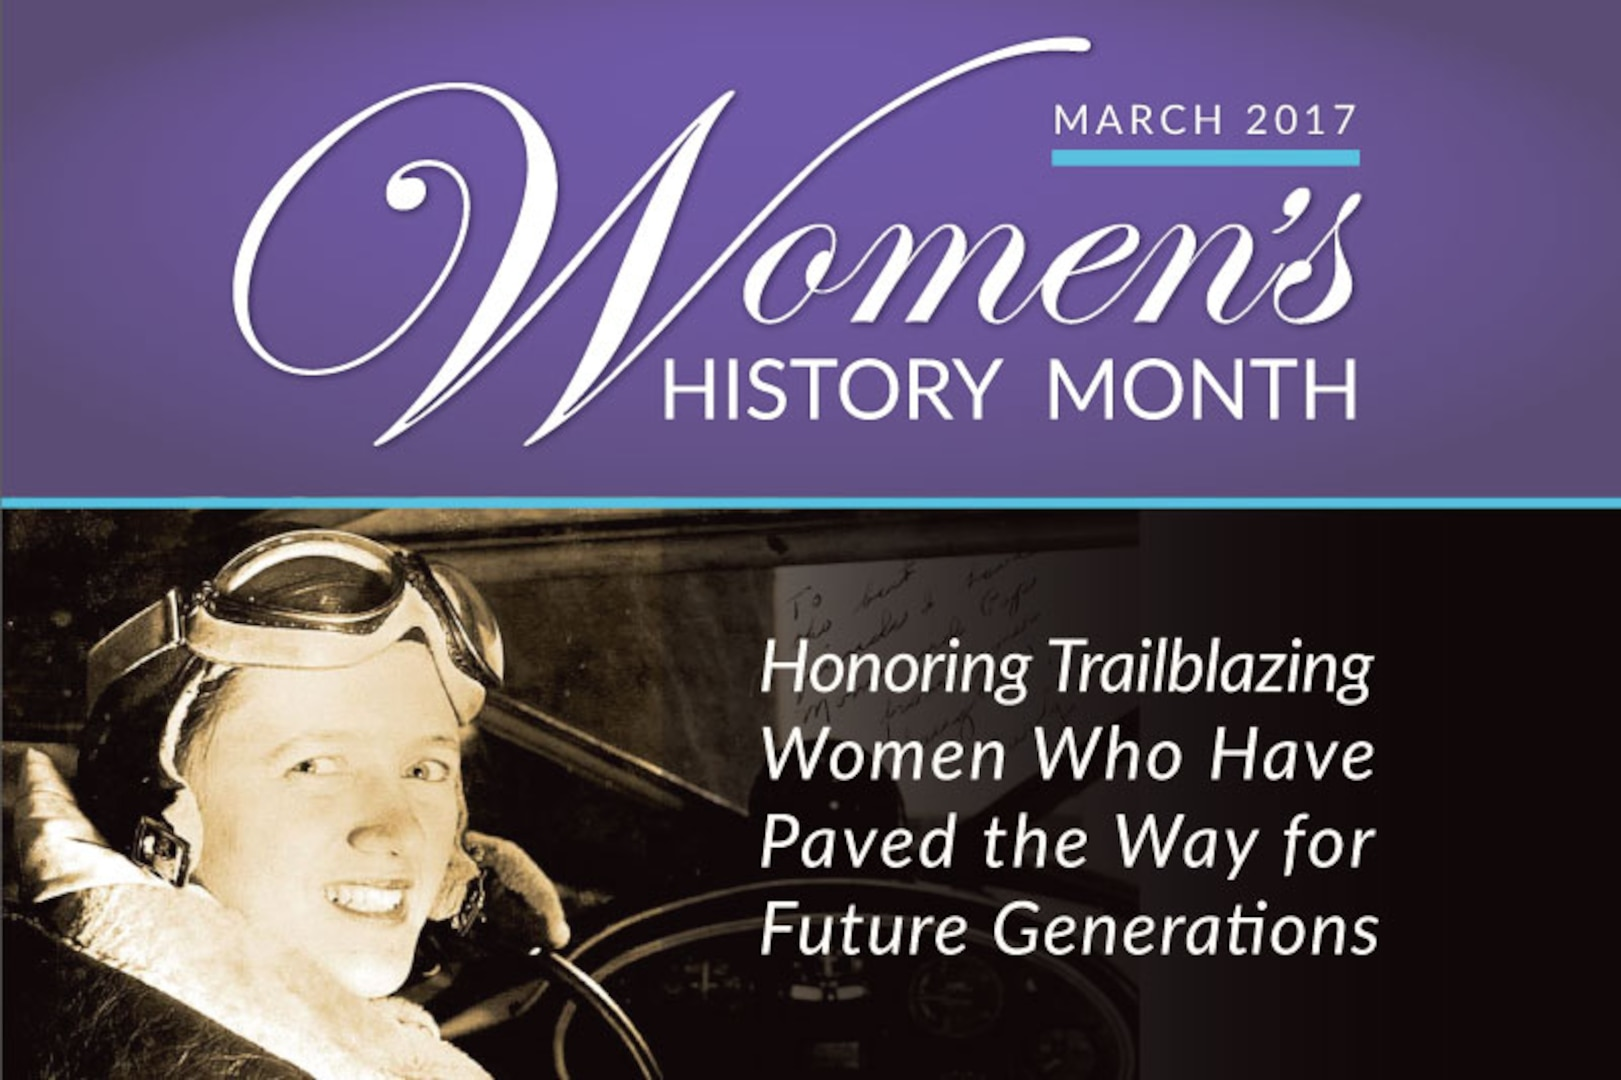 A title graphic including an image of a woman pilot.